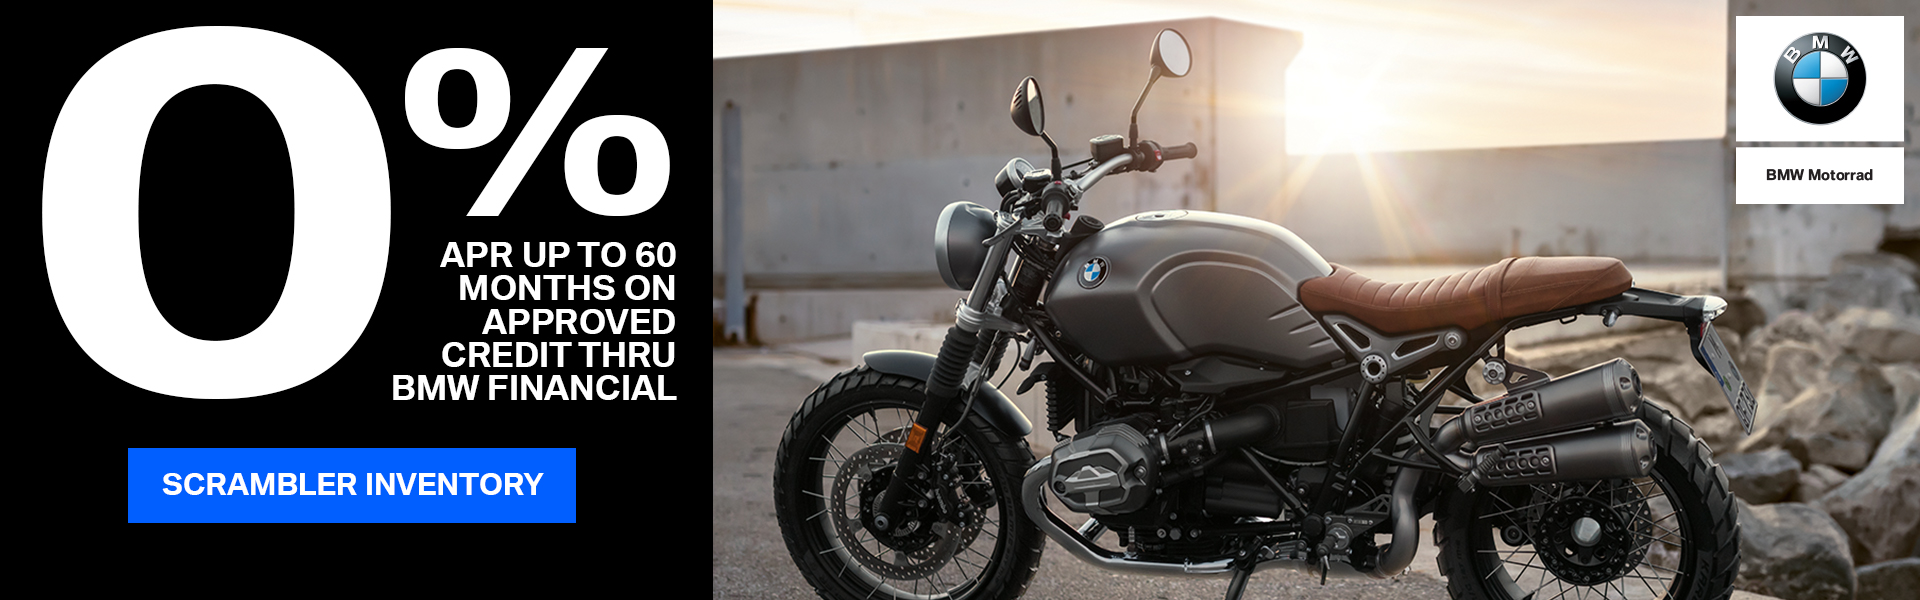 BMW Motorcycles of Concord | BMW Motorcycle Dealership | Concord, CA